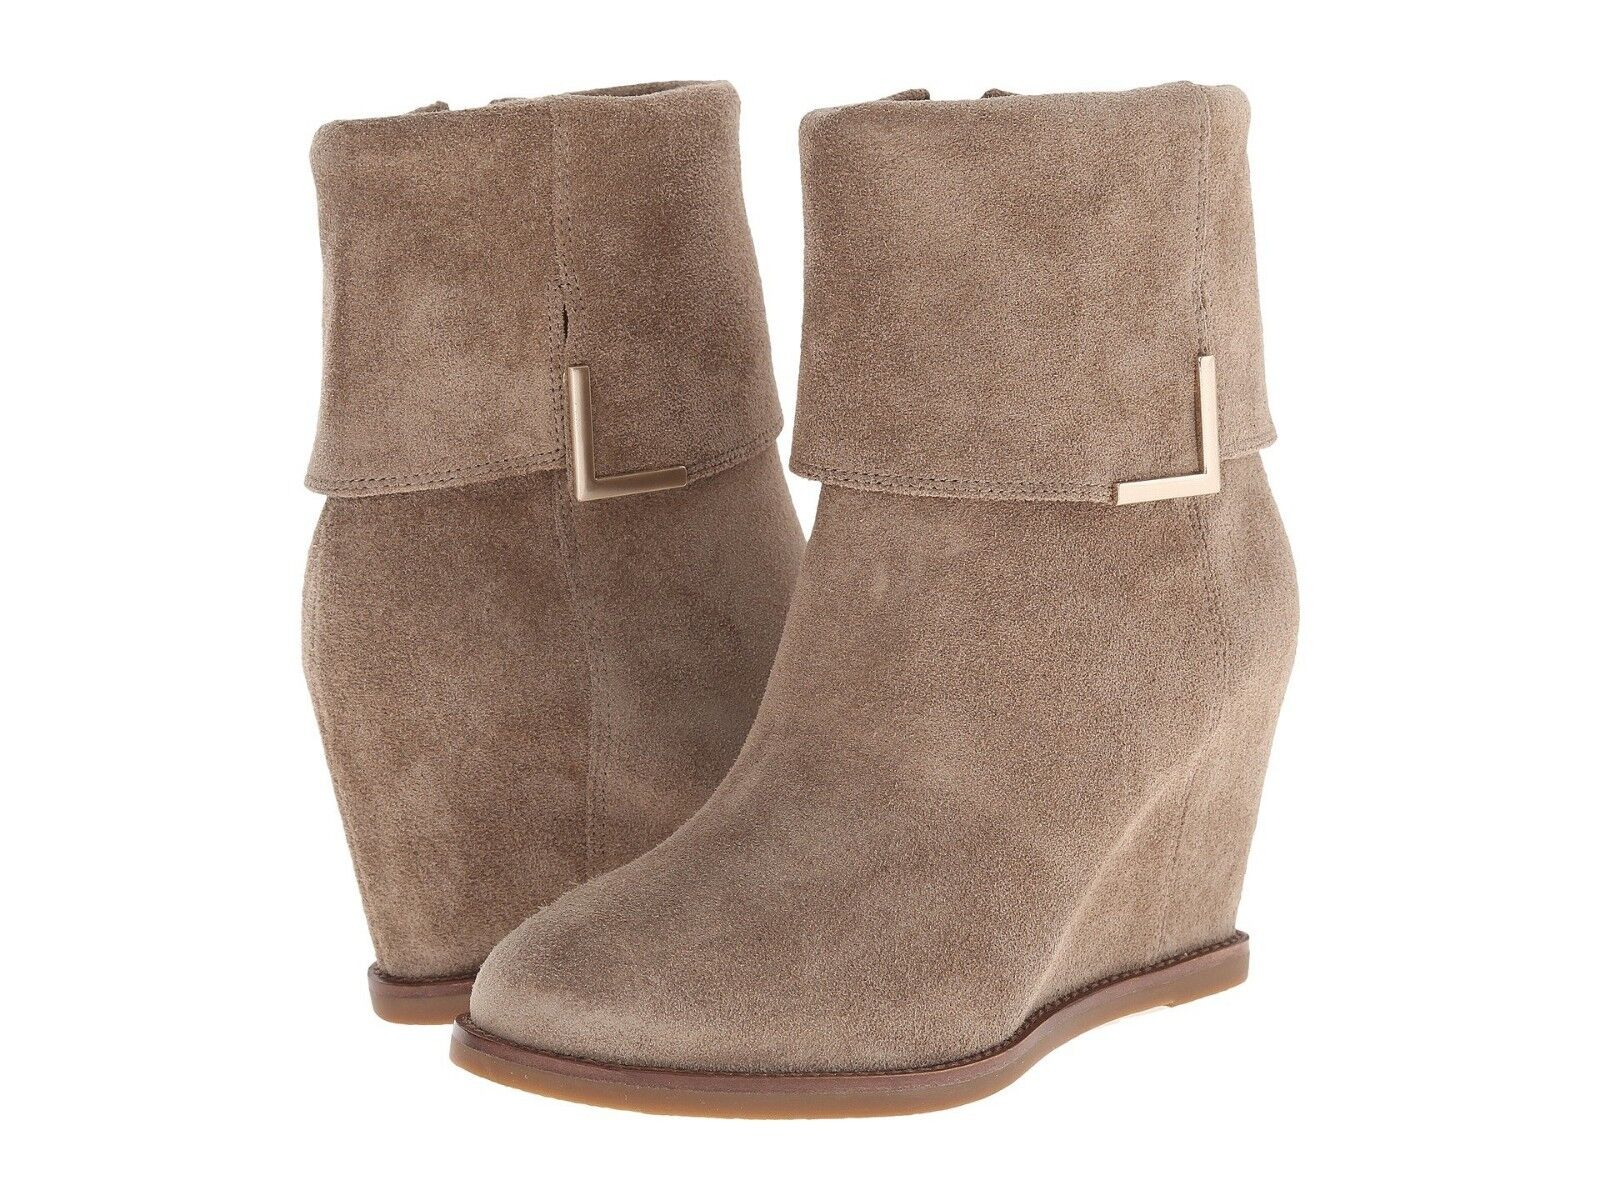 NEW NIB JOHNSTON & MURPHY Taupe Oiled Suede BRYNN Cuff  Ankle Bootie Sz 9 M